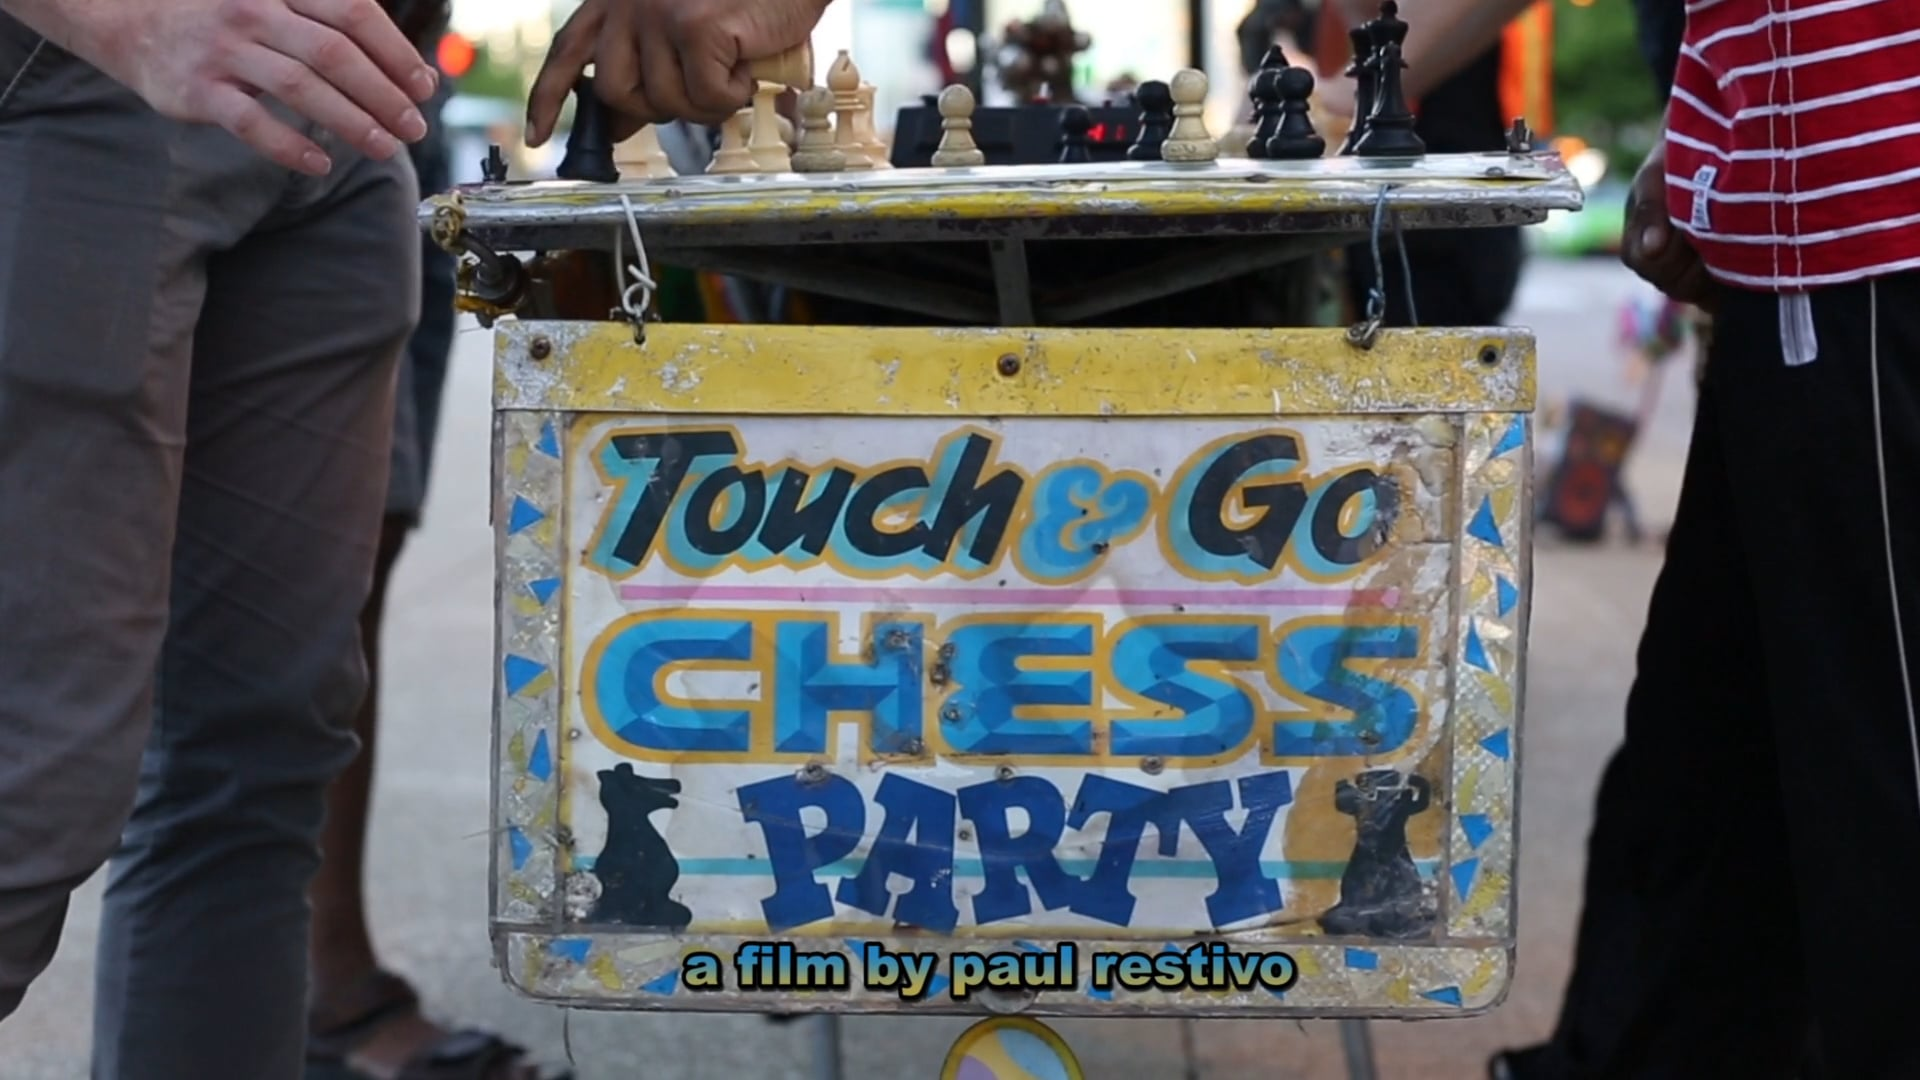 Touch and Go Chess Party (Official Trailer)